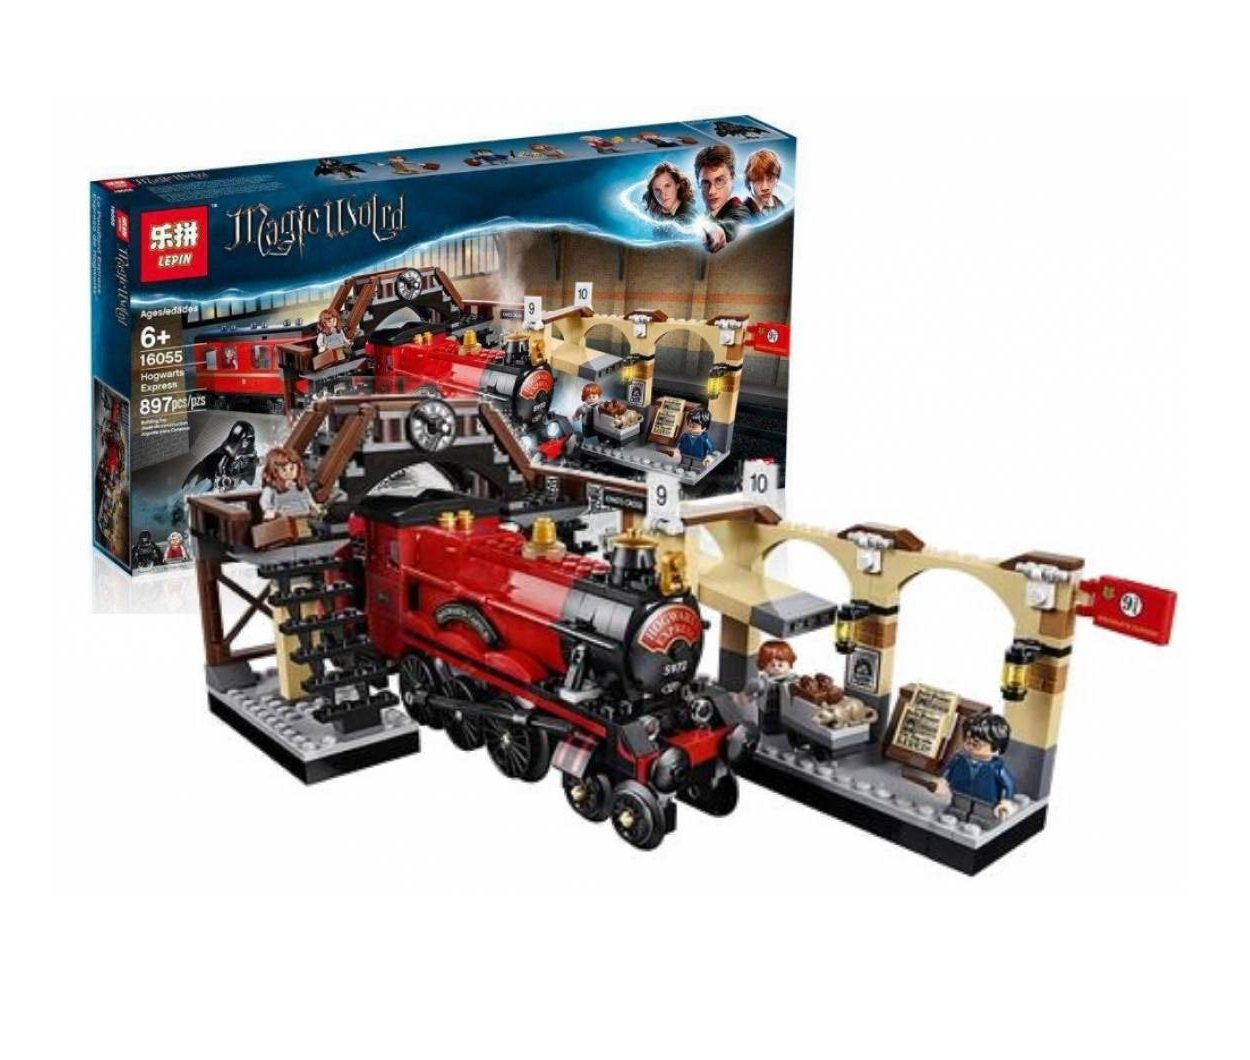 16055 Hogwarts Express Harry Potter 75955 Building Lego Blocks Toys